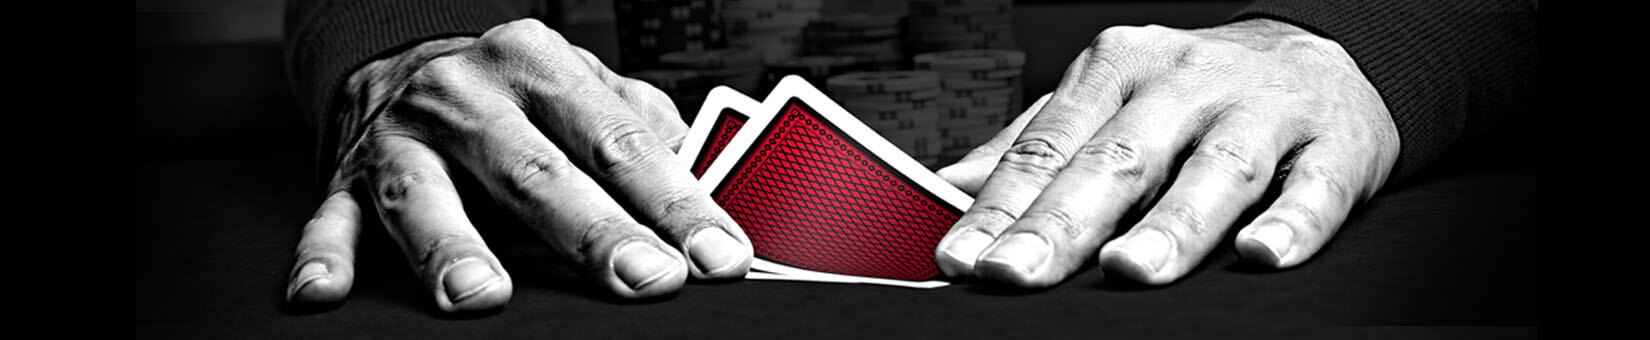 Seven card Stud poker at Full Tilt